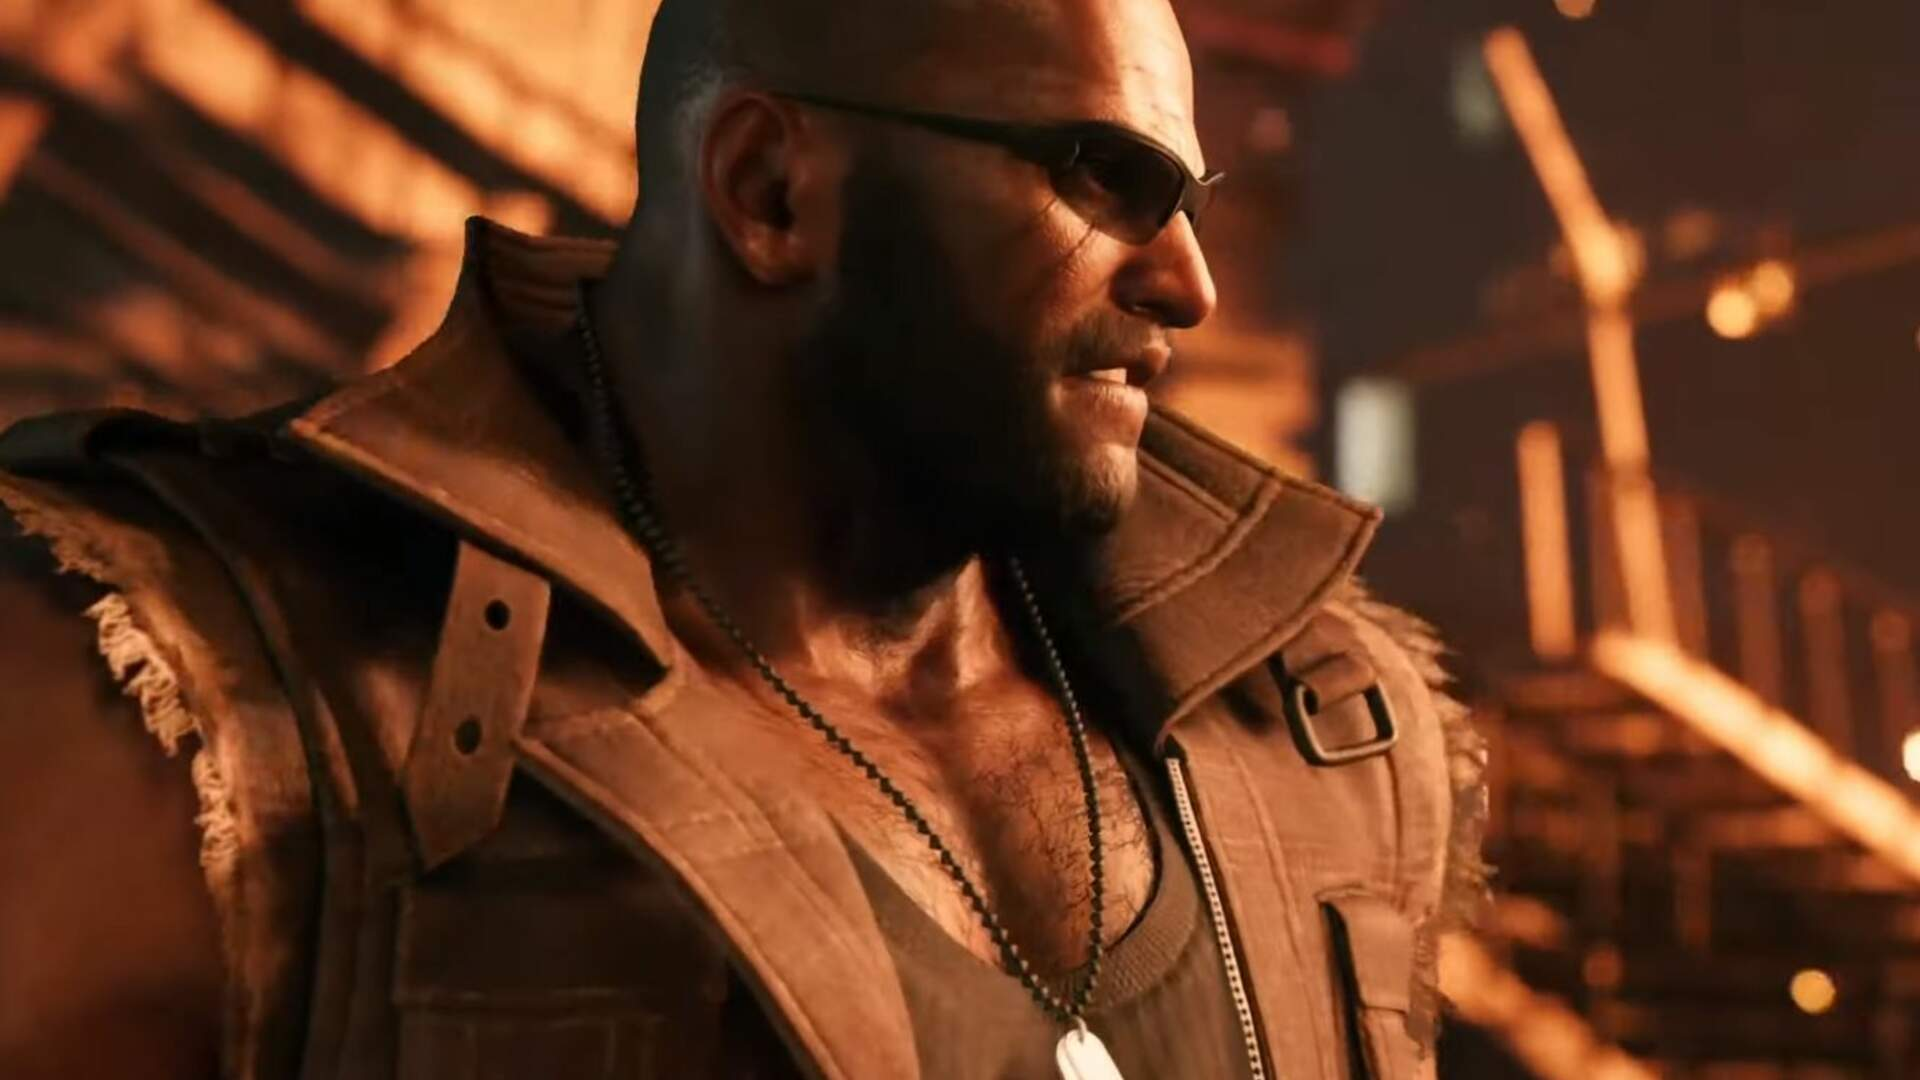 The Peculiar Controversies That Have Emerged Around Final Fantasy 7 Remake's Versions of Cloud, Aerith, and Barret